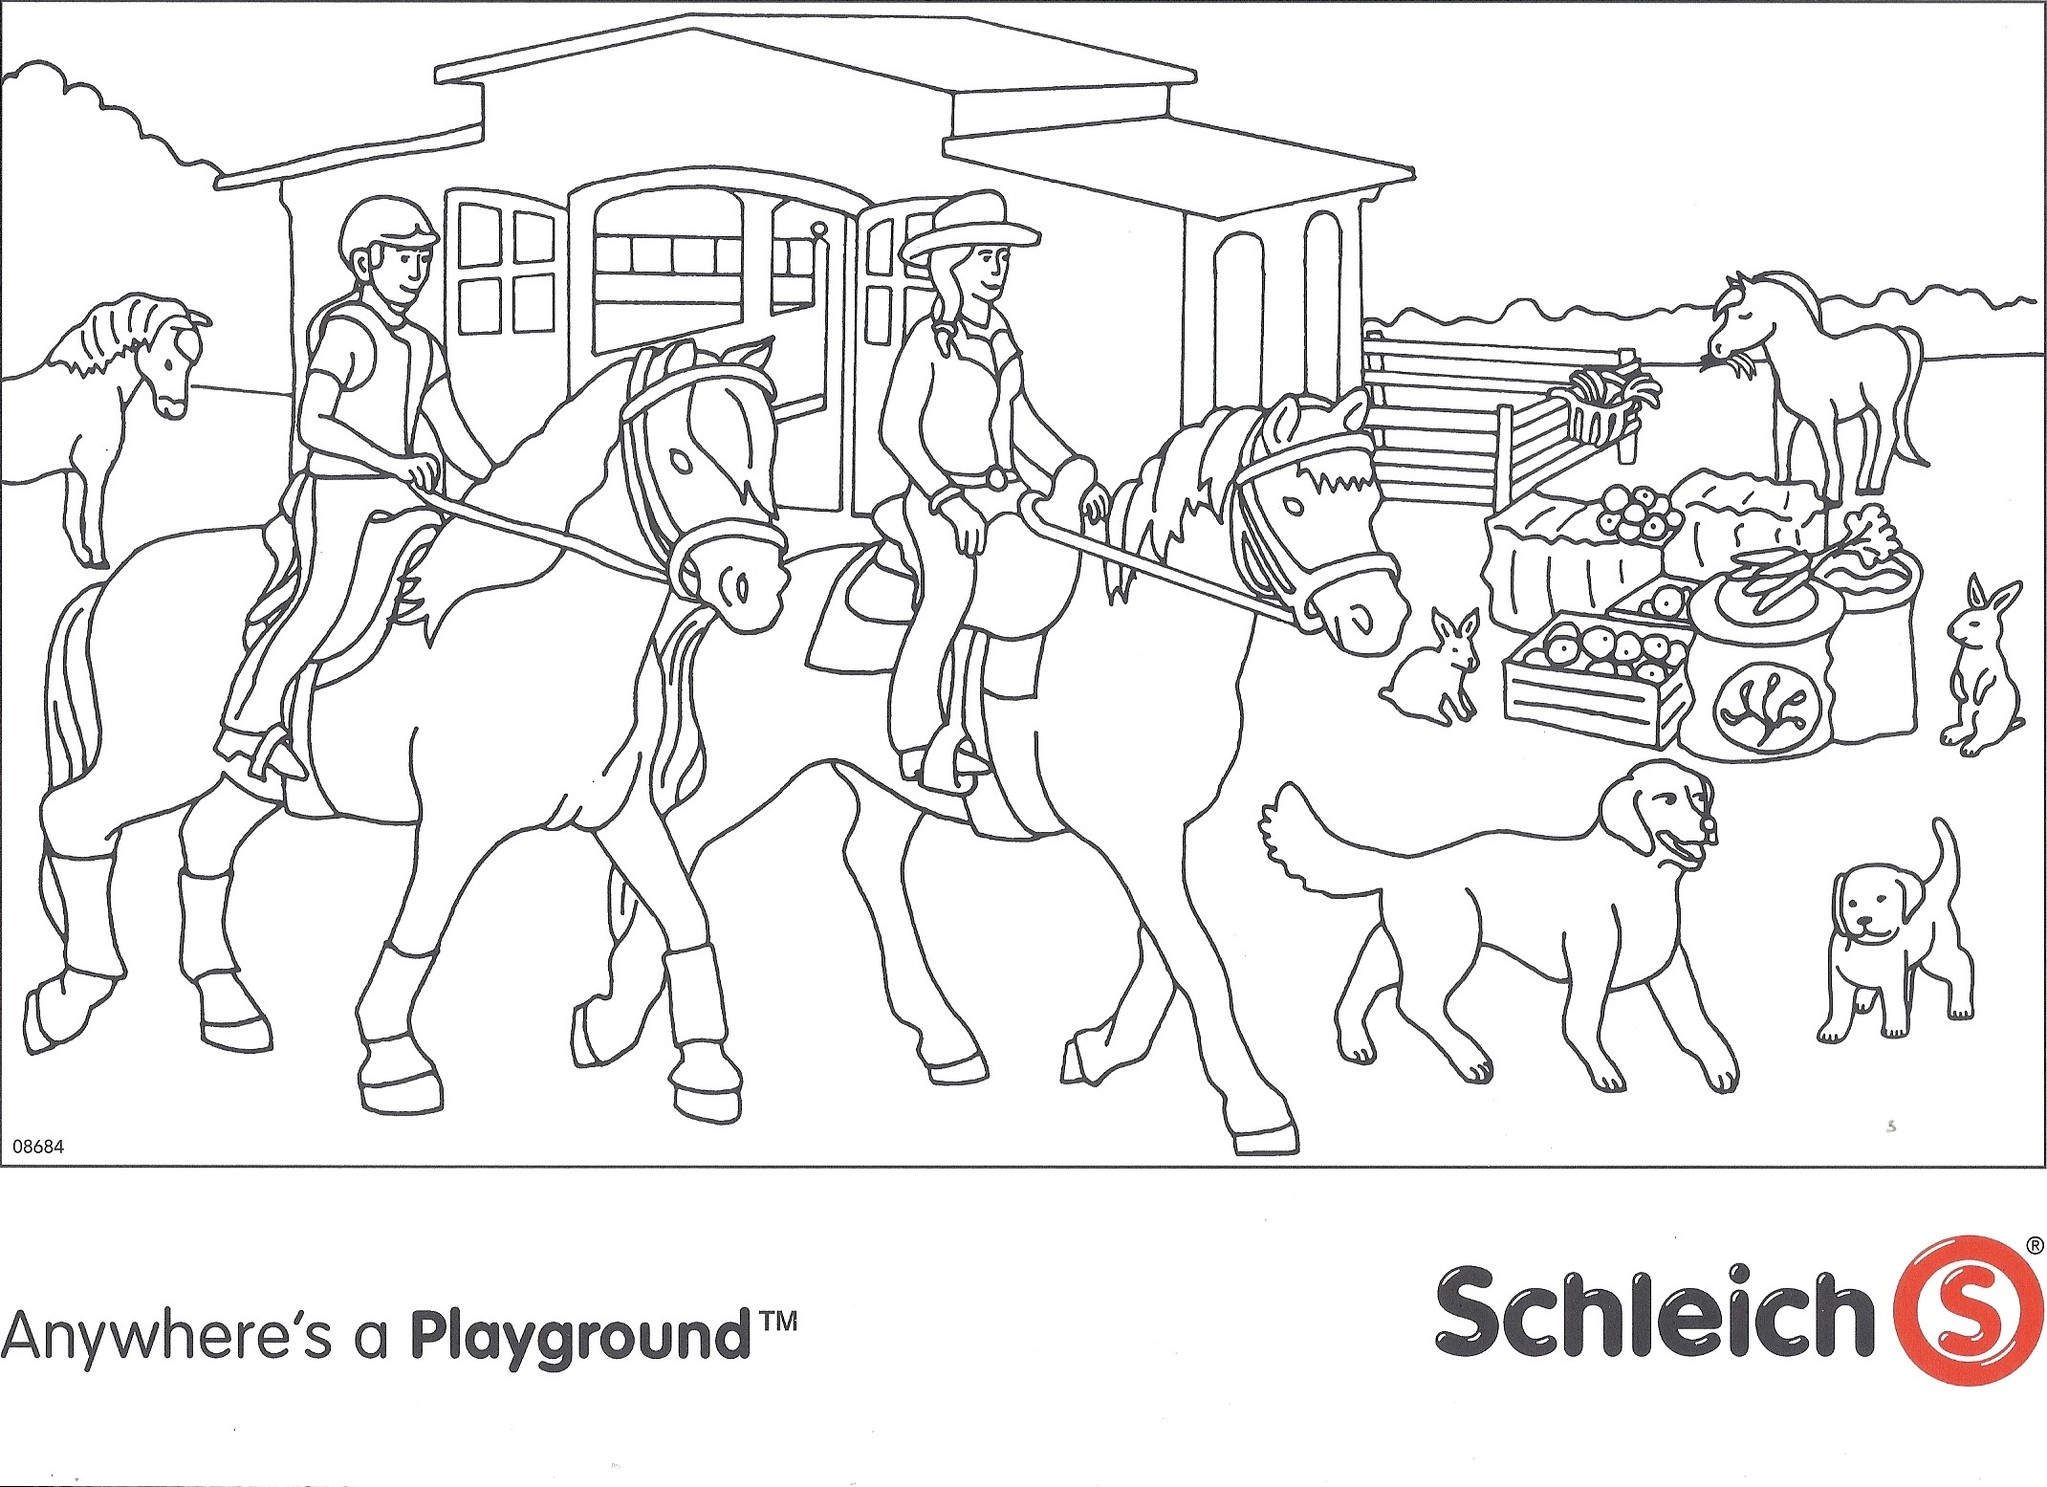 Kleurplaten Honden En Paarden.Coloring Sheets Of Horses Dover Publications You Can Browse Our